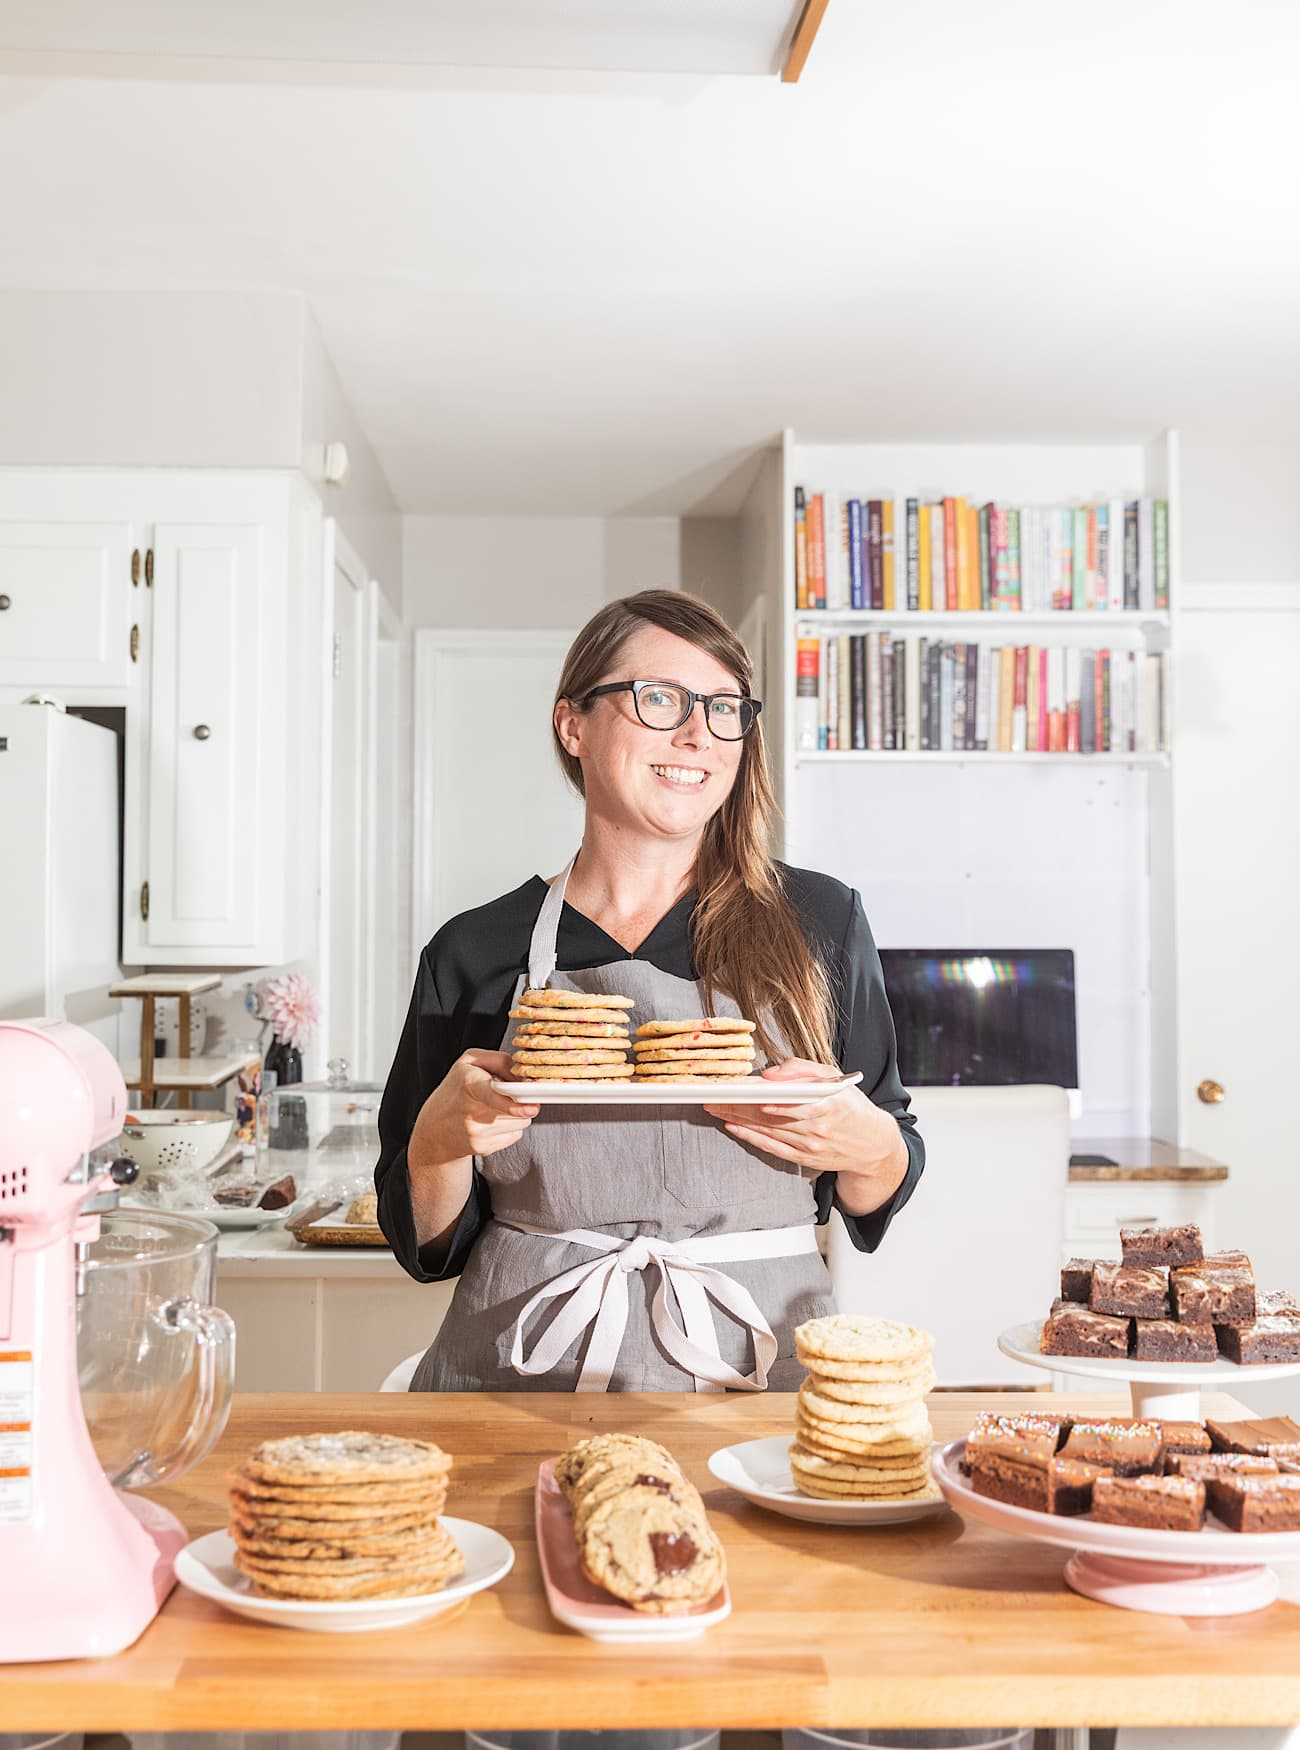 Sarah Kieffer wearing a grey apron holding a plate of stacked cookies